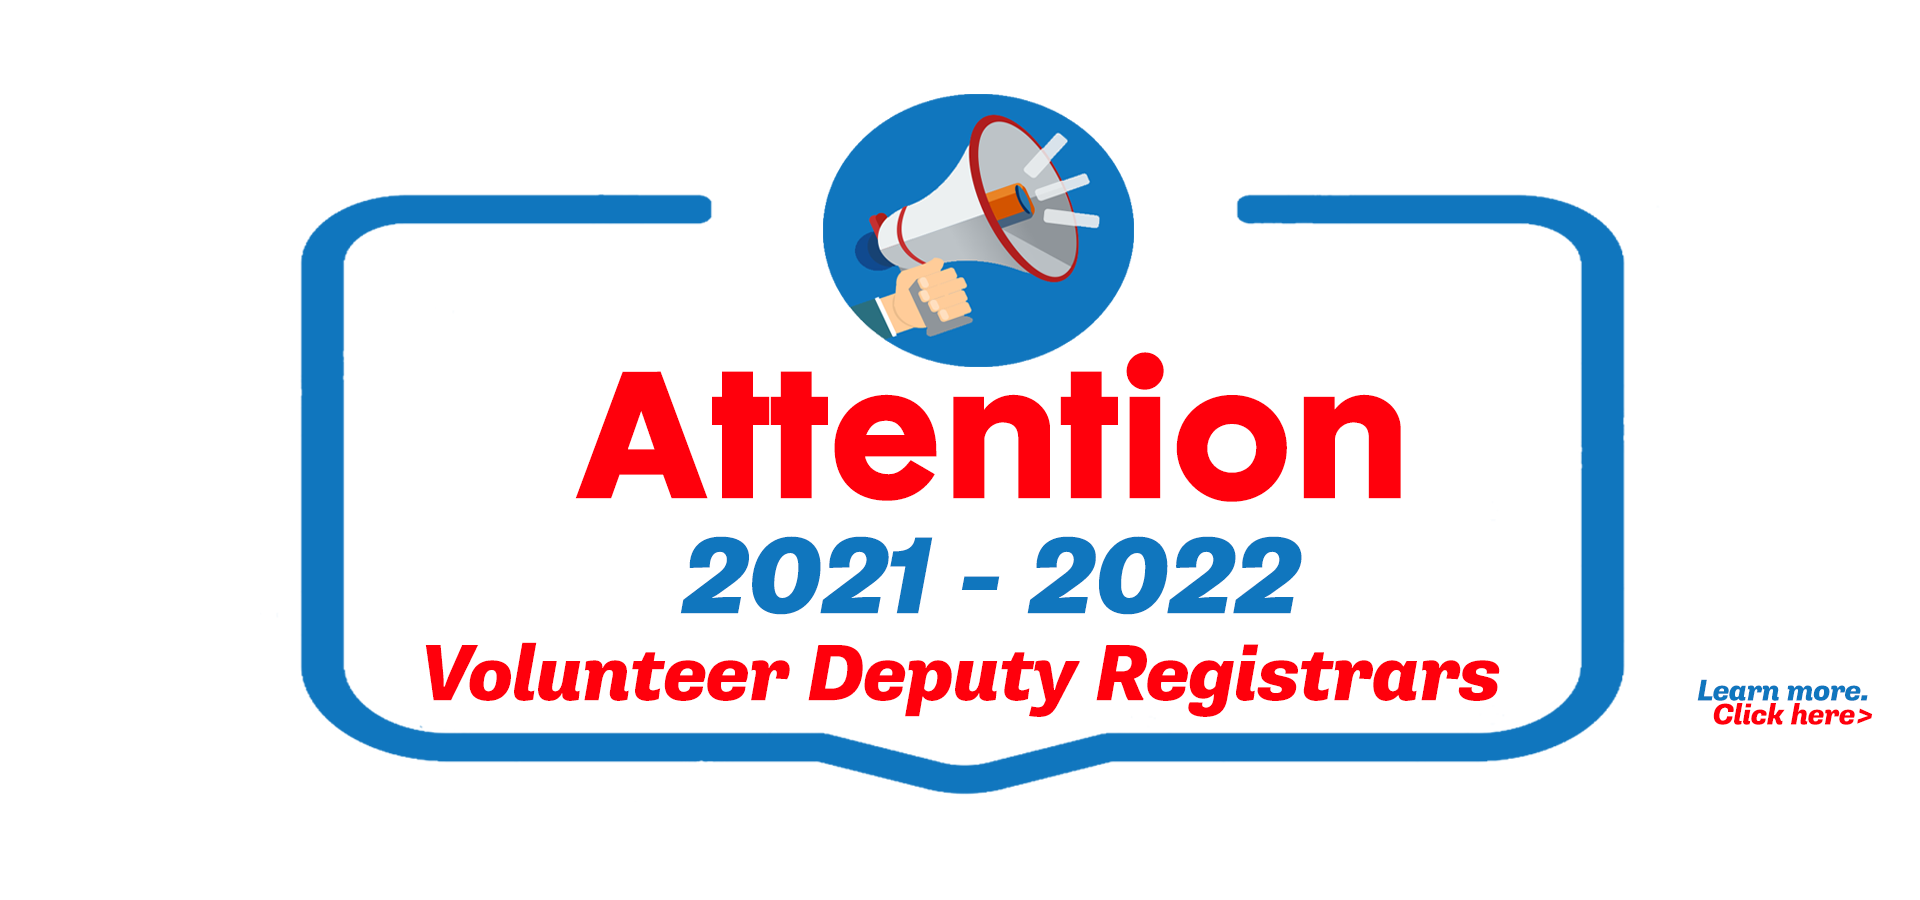 Volunteer Deputy Registrar